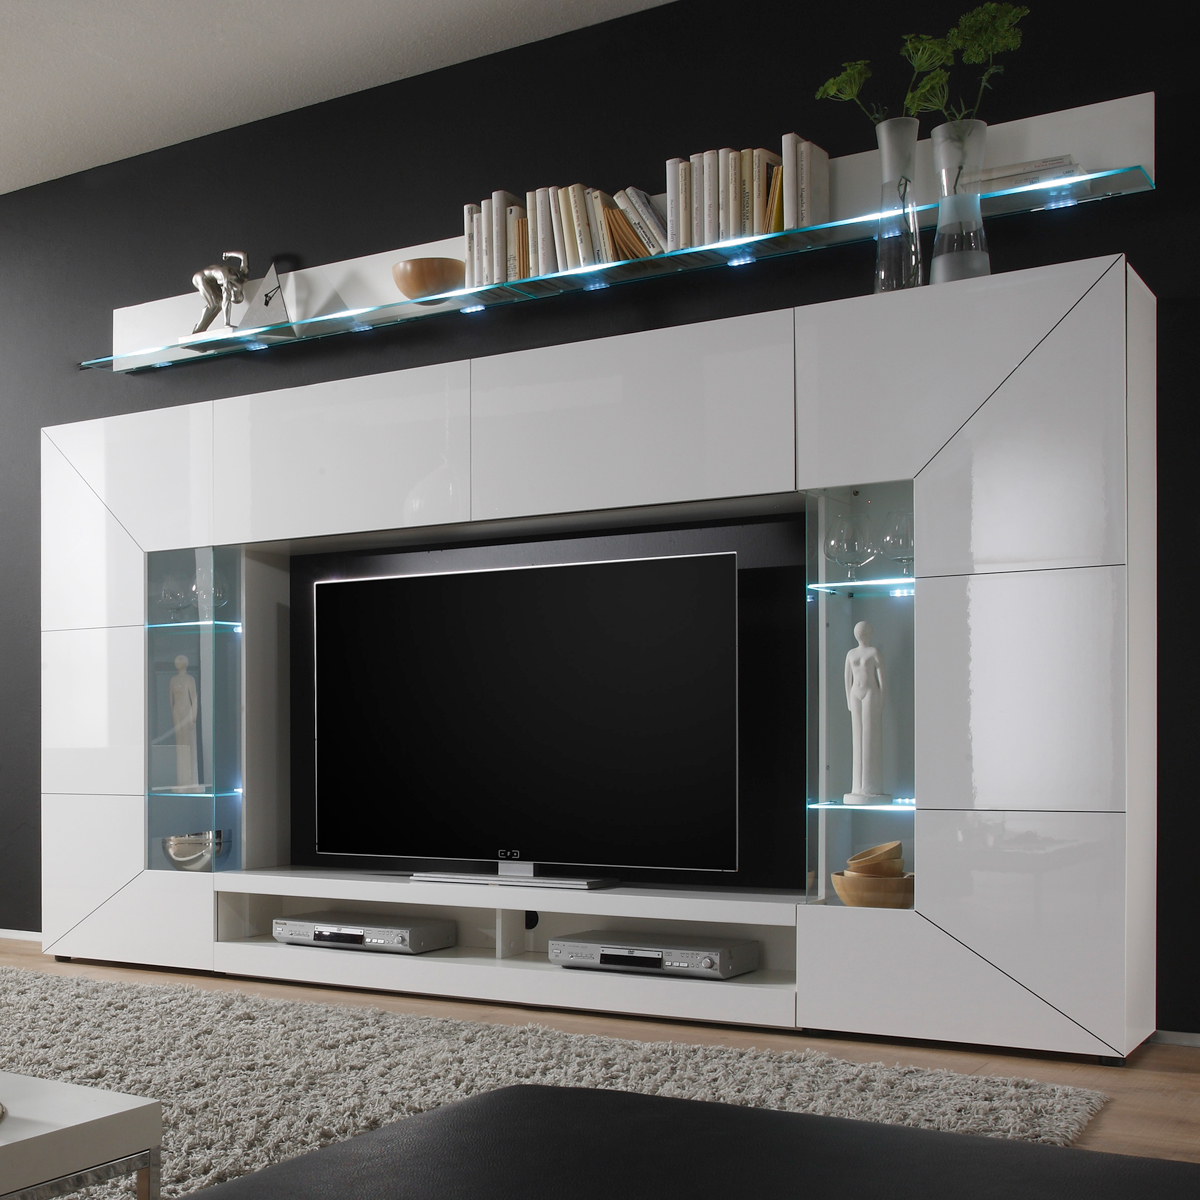 wohnwand mediawand 2e wei hochglanz mit tv lowboard 2. Black Bedroom Furniture Sets. Home Design Ideas